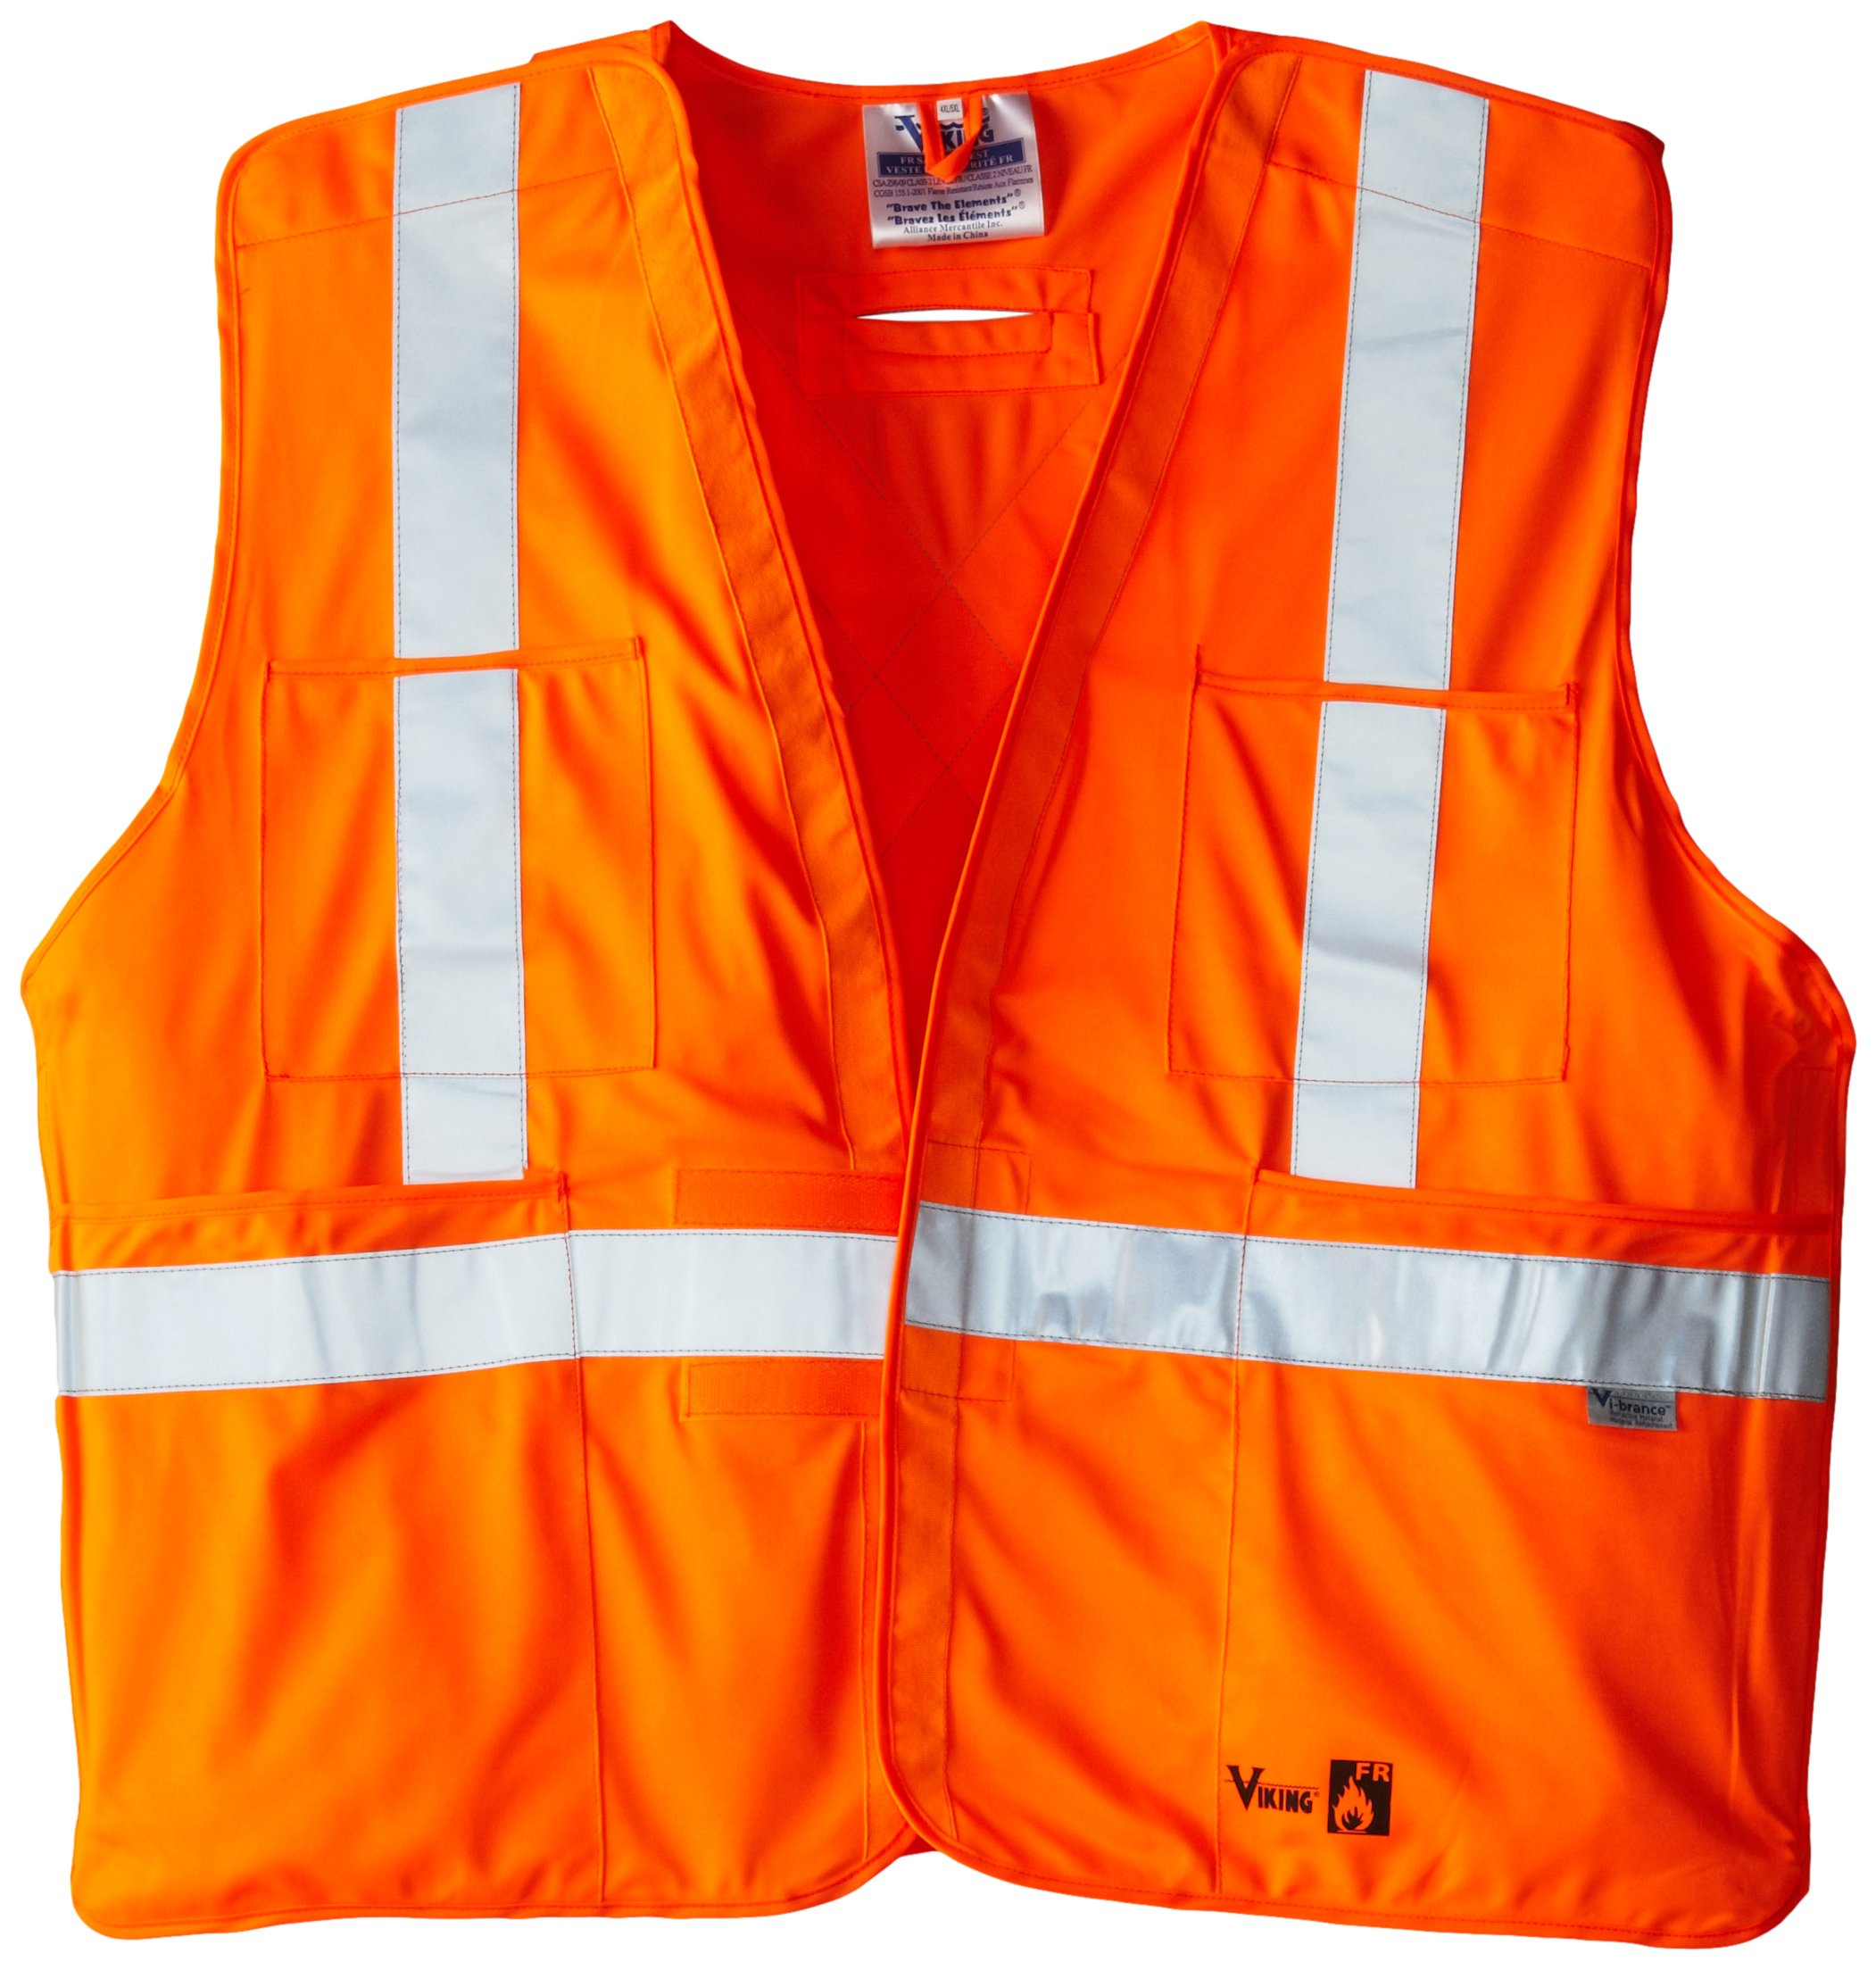 Viking FR Flame Resistant Reflective Vest, Orange, 4X-Large/5X-Large